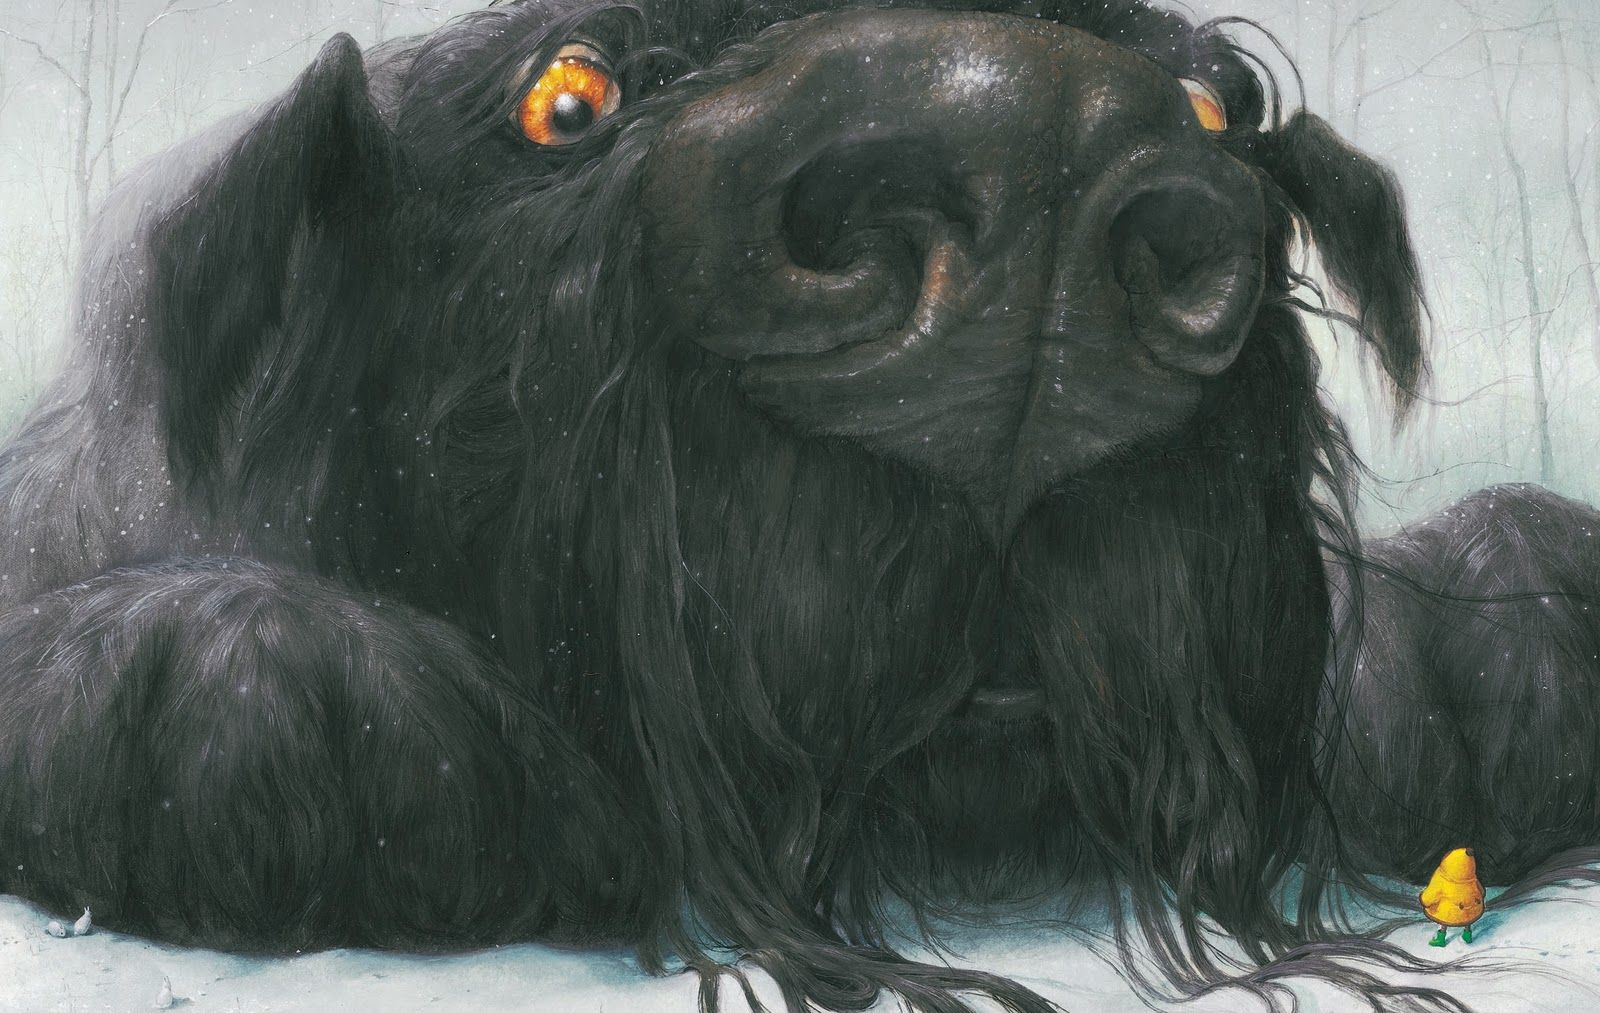 Black Dog by Levi Pinfold I LOVE THIS ILLUSTRATION!